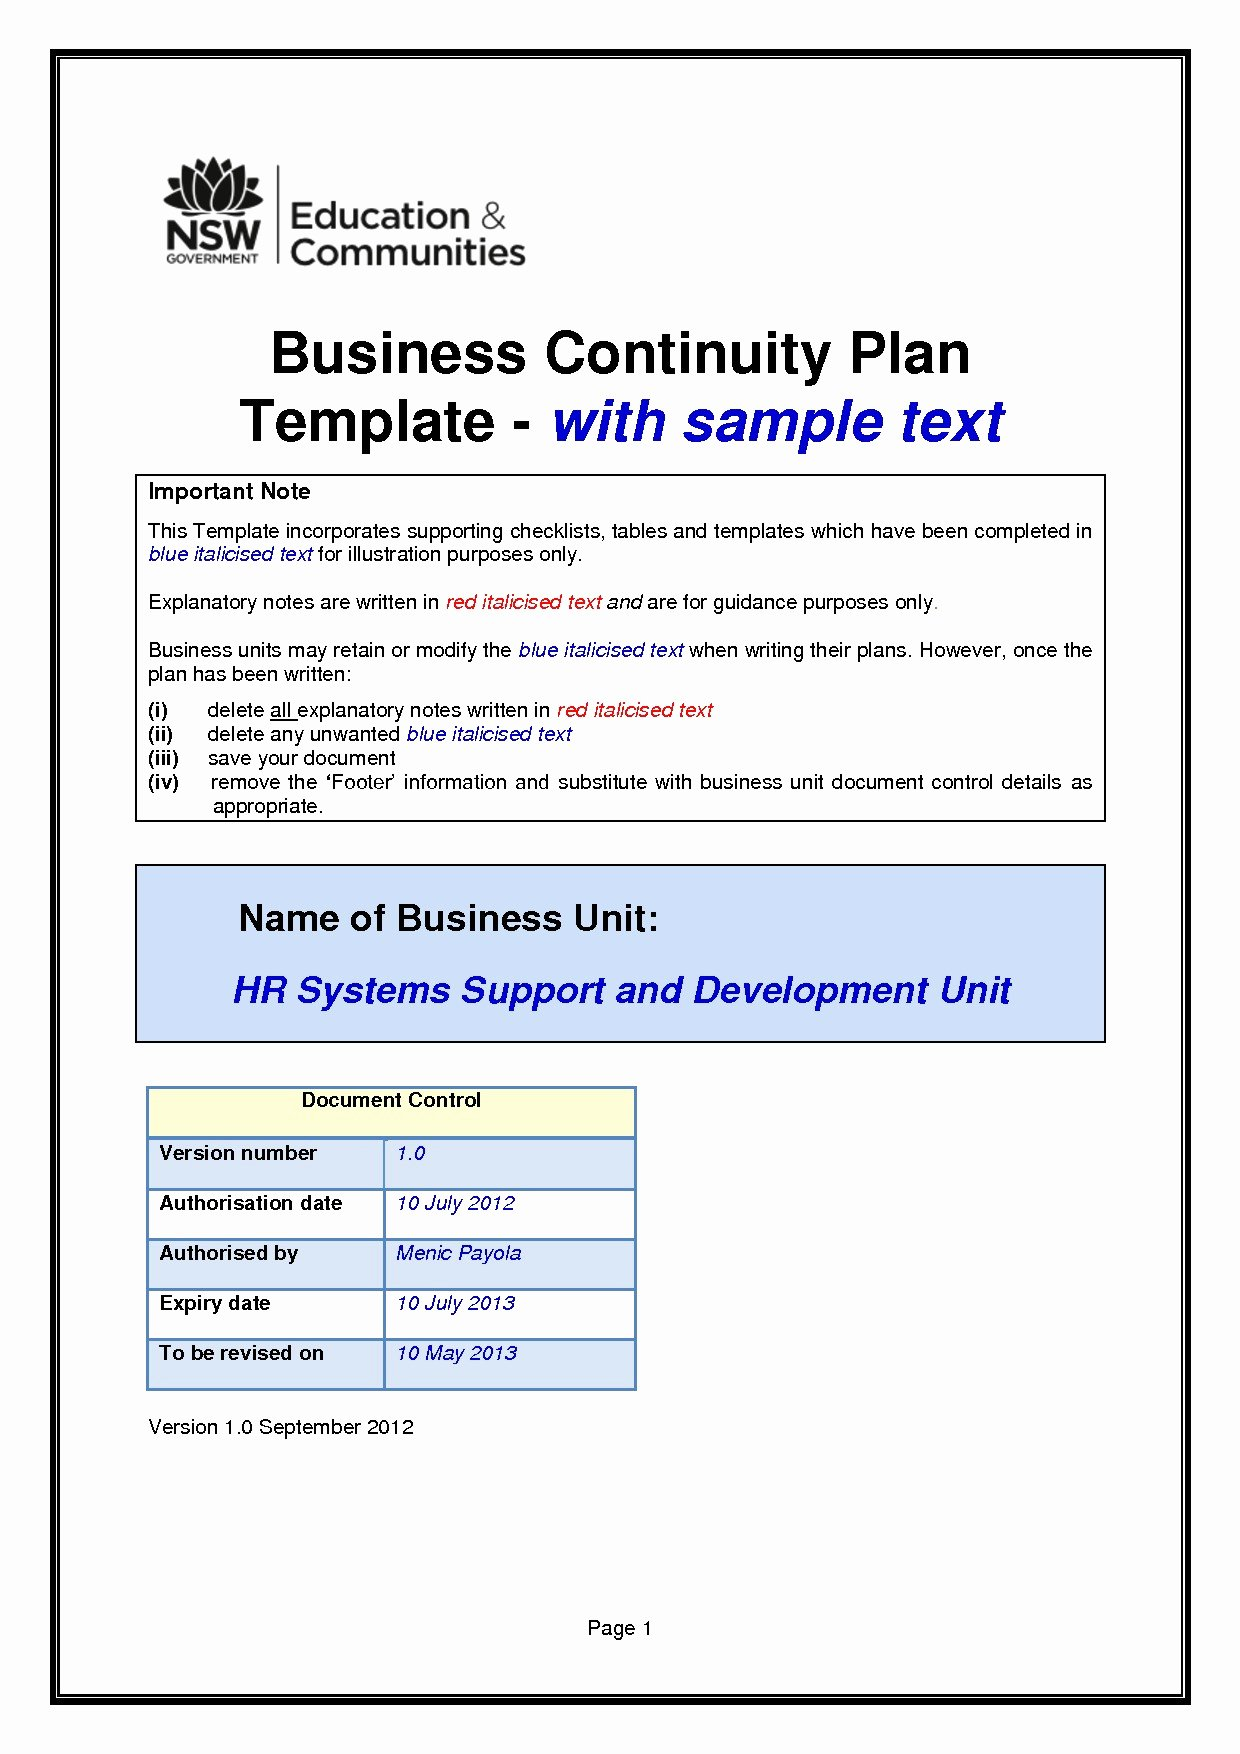 Simple Disaster Recovery Plan Template Luxury Simple Disaster Recovery Plan Template for Small Business